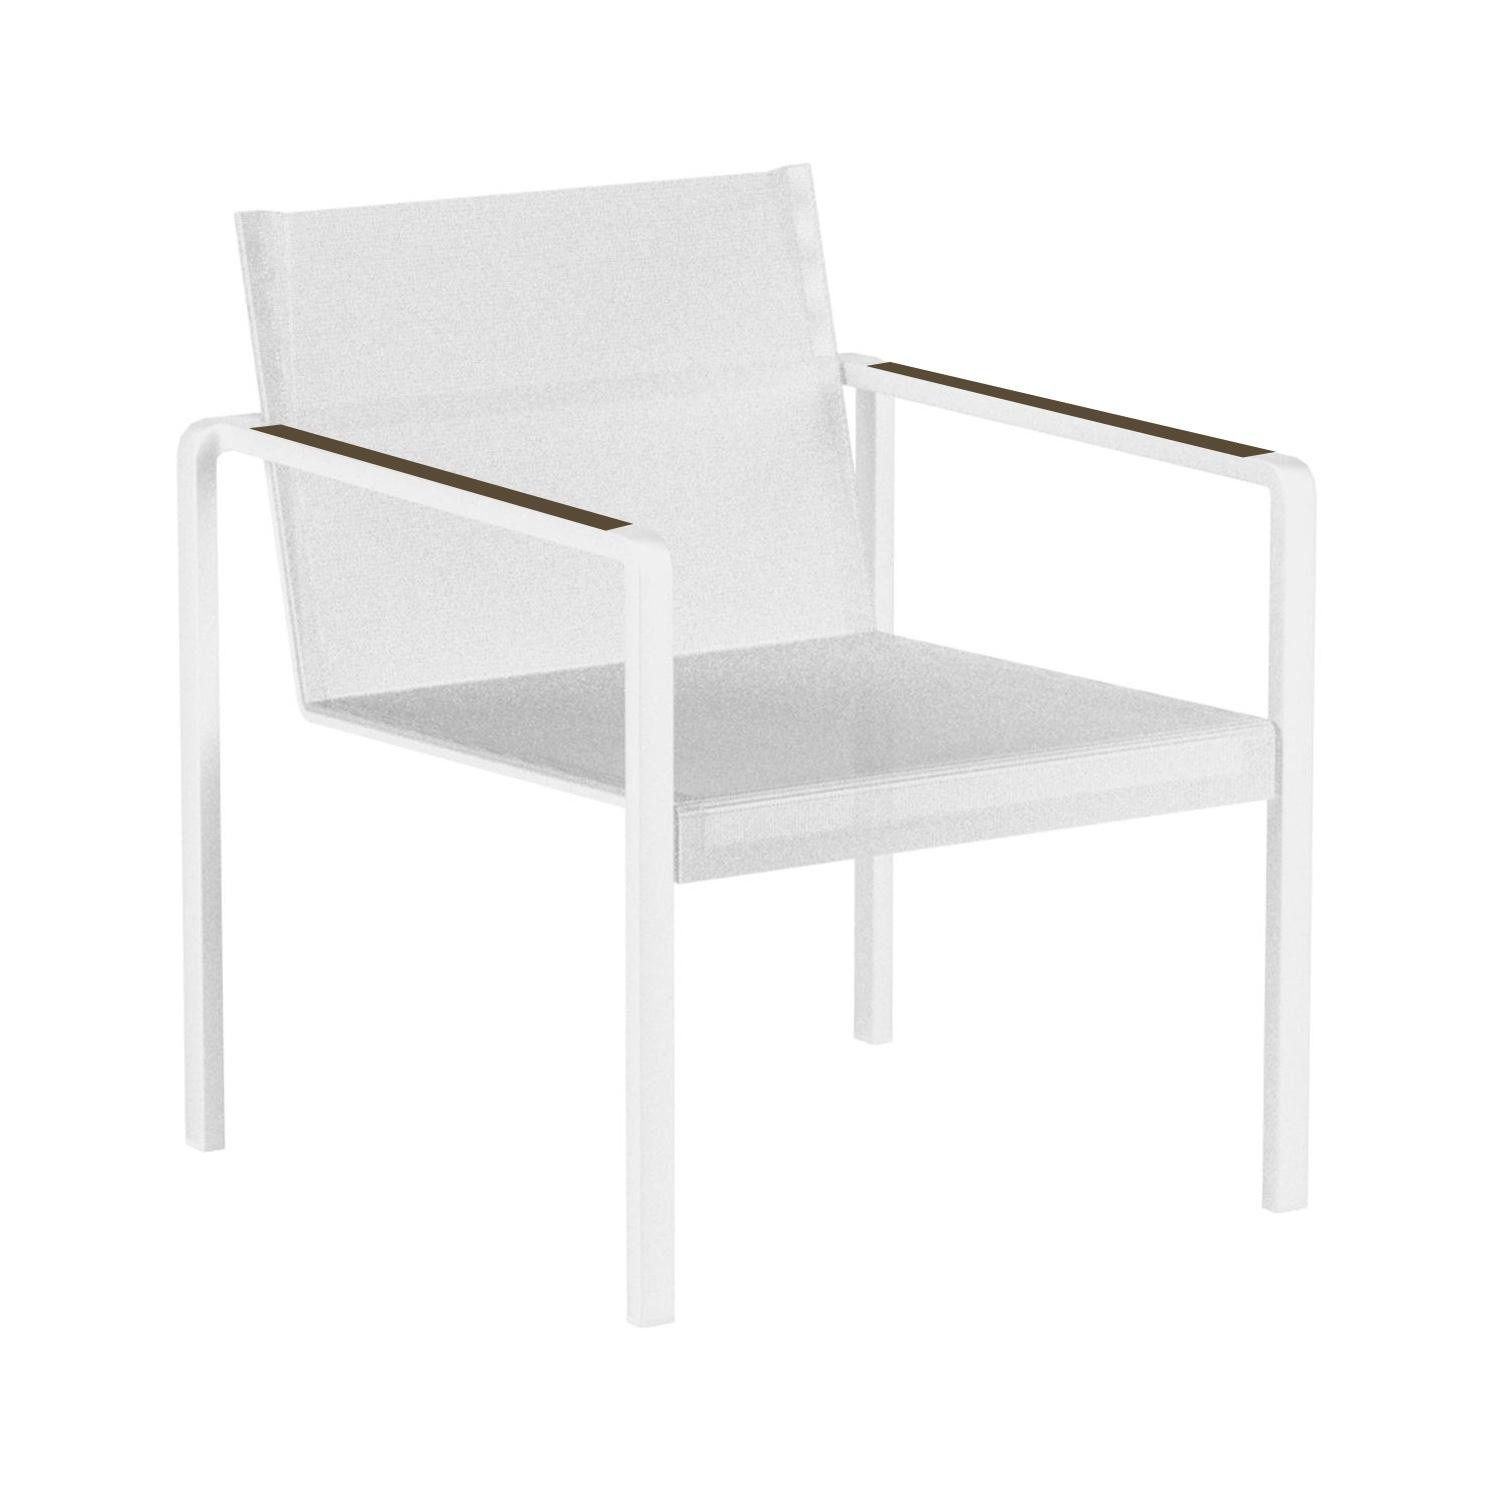 Outdoor Lounge Alura Outdoor Lounge Chair